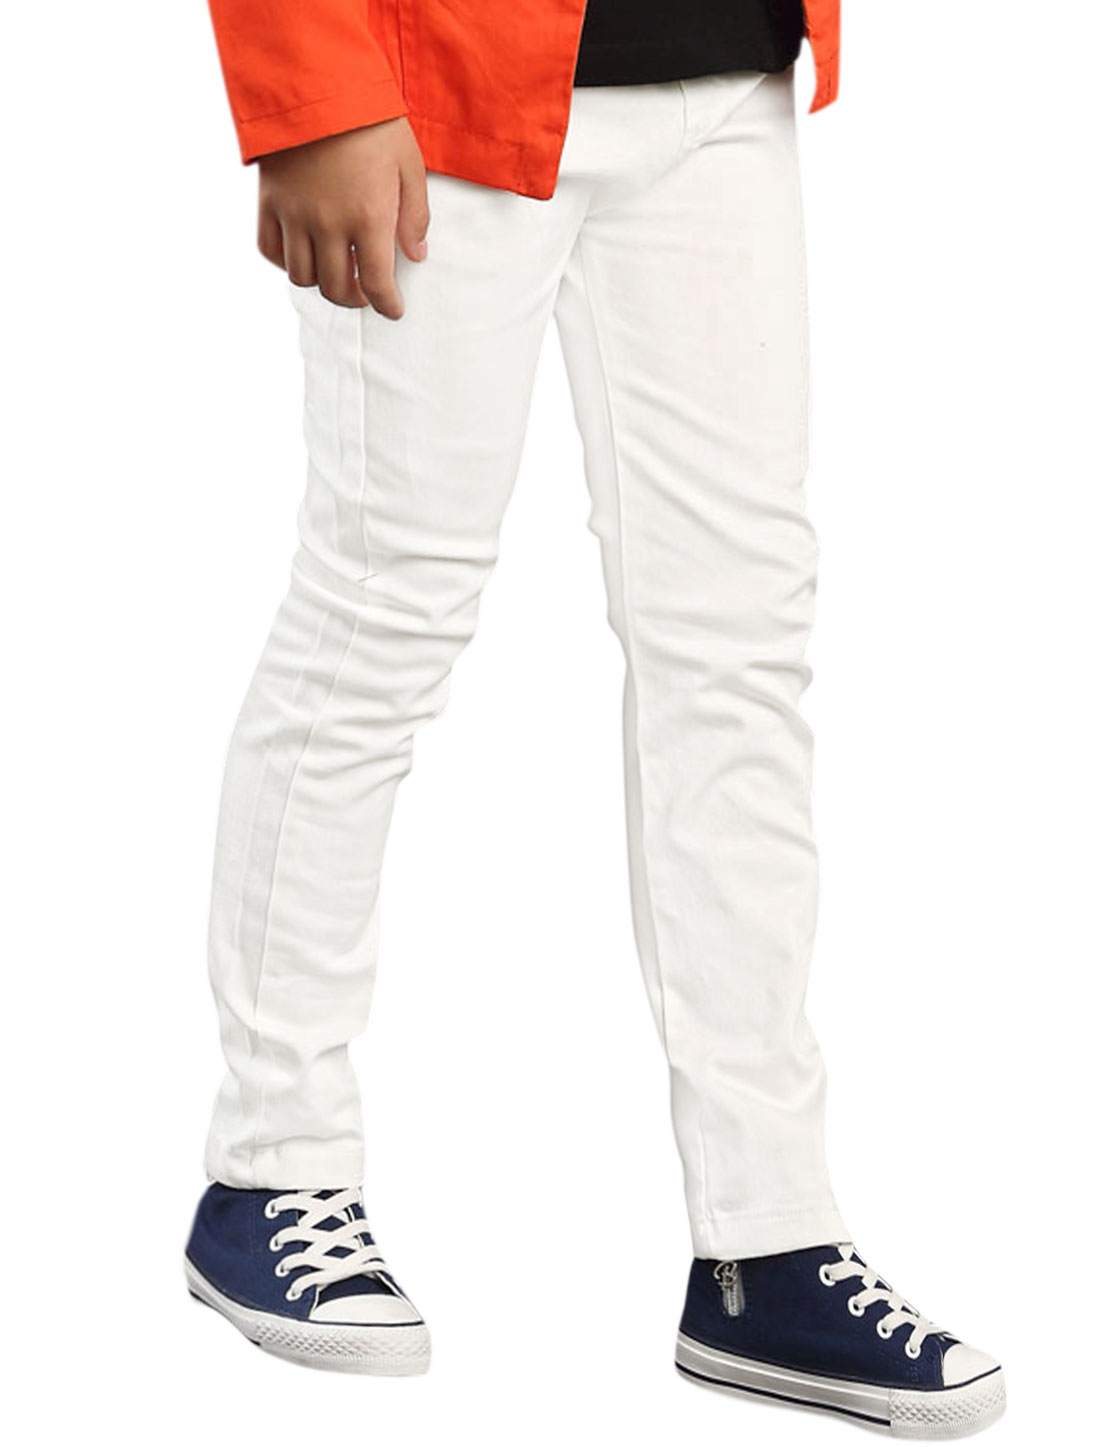 Boys Elastic Waist Side Pockets Straight Leg Pants White 5